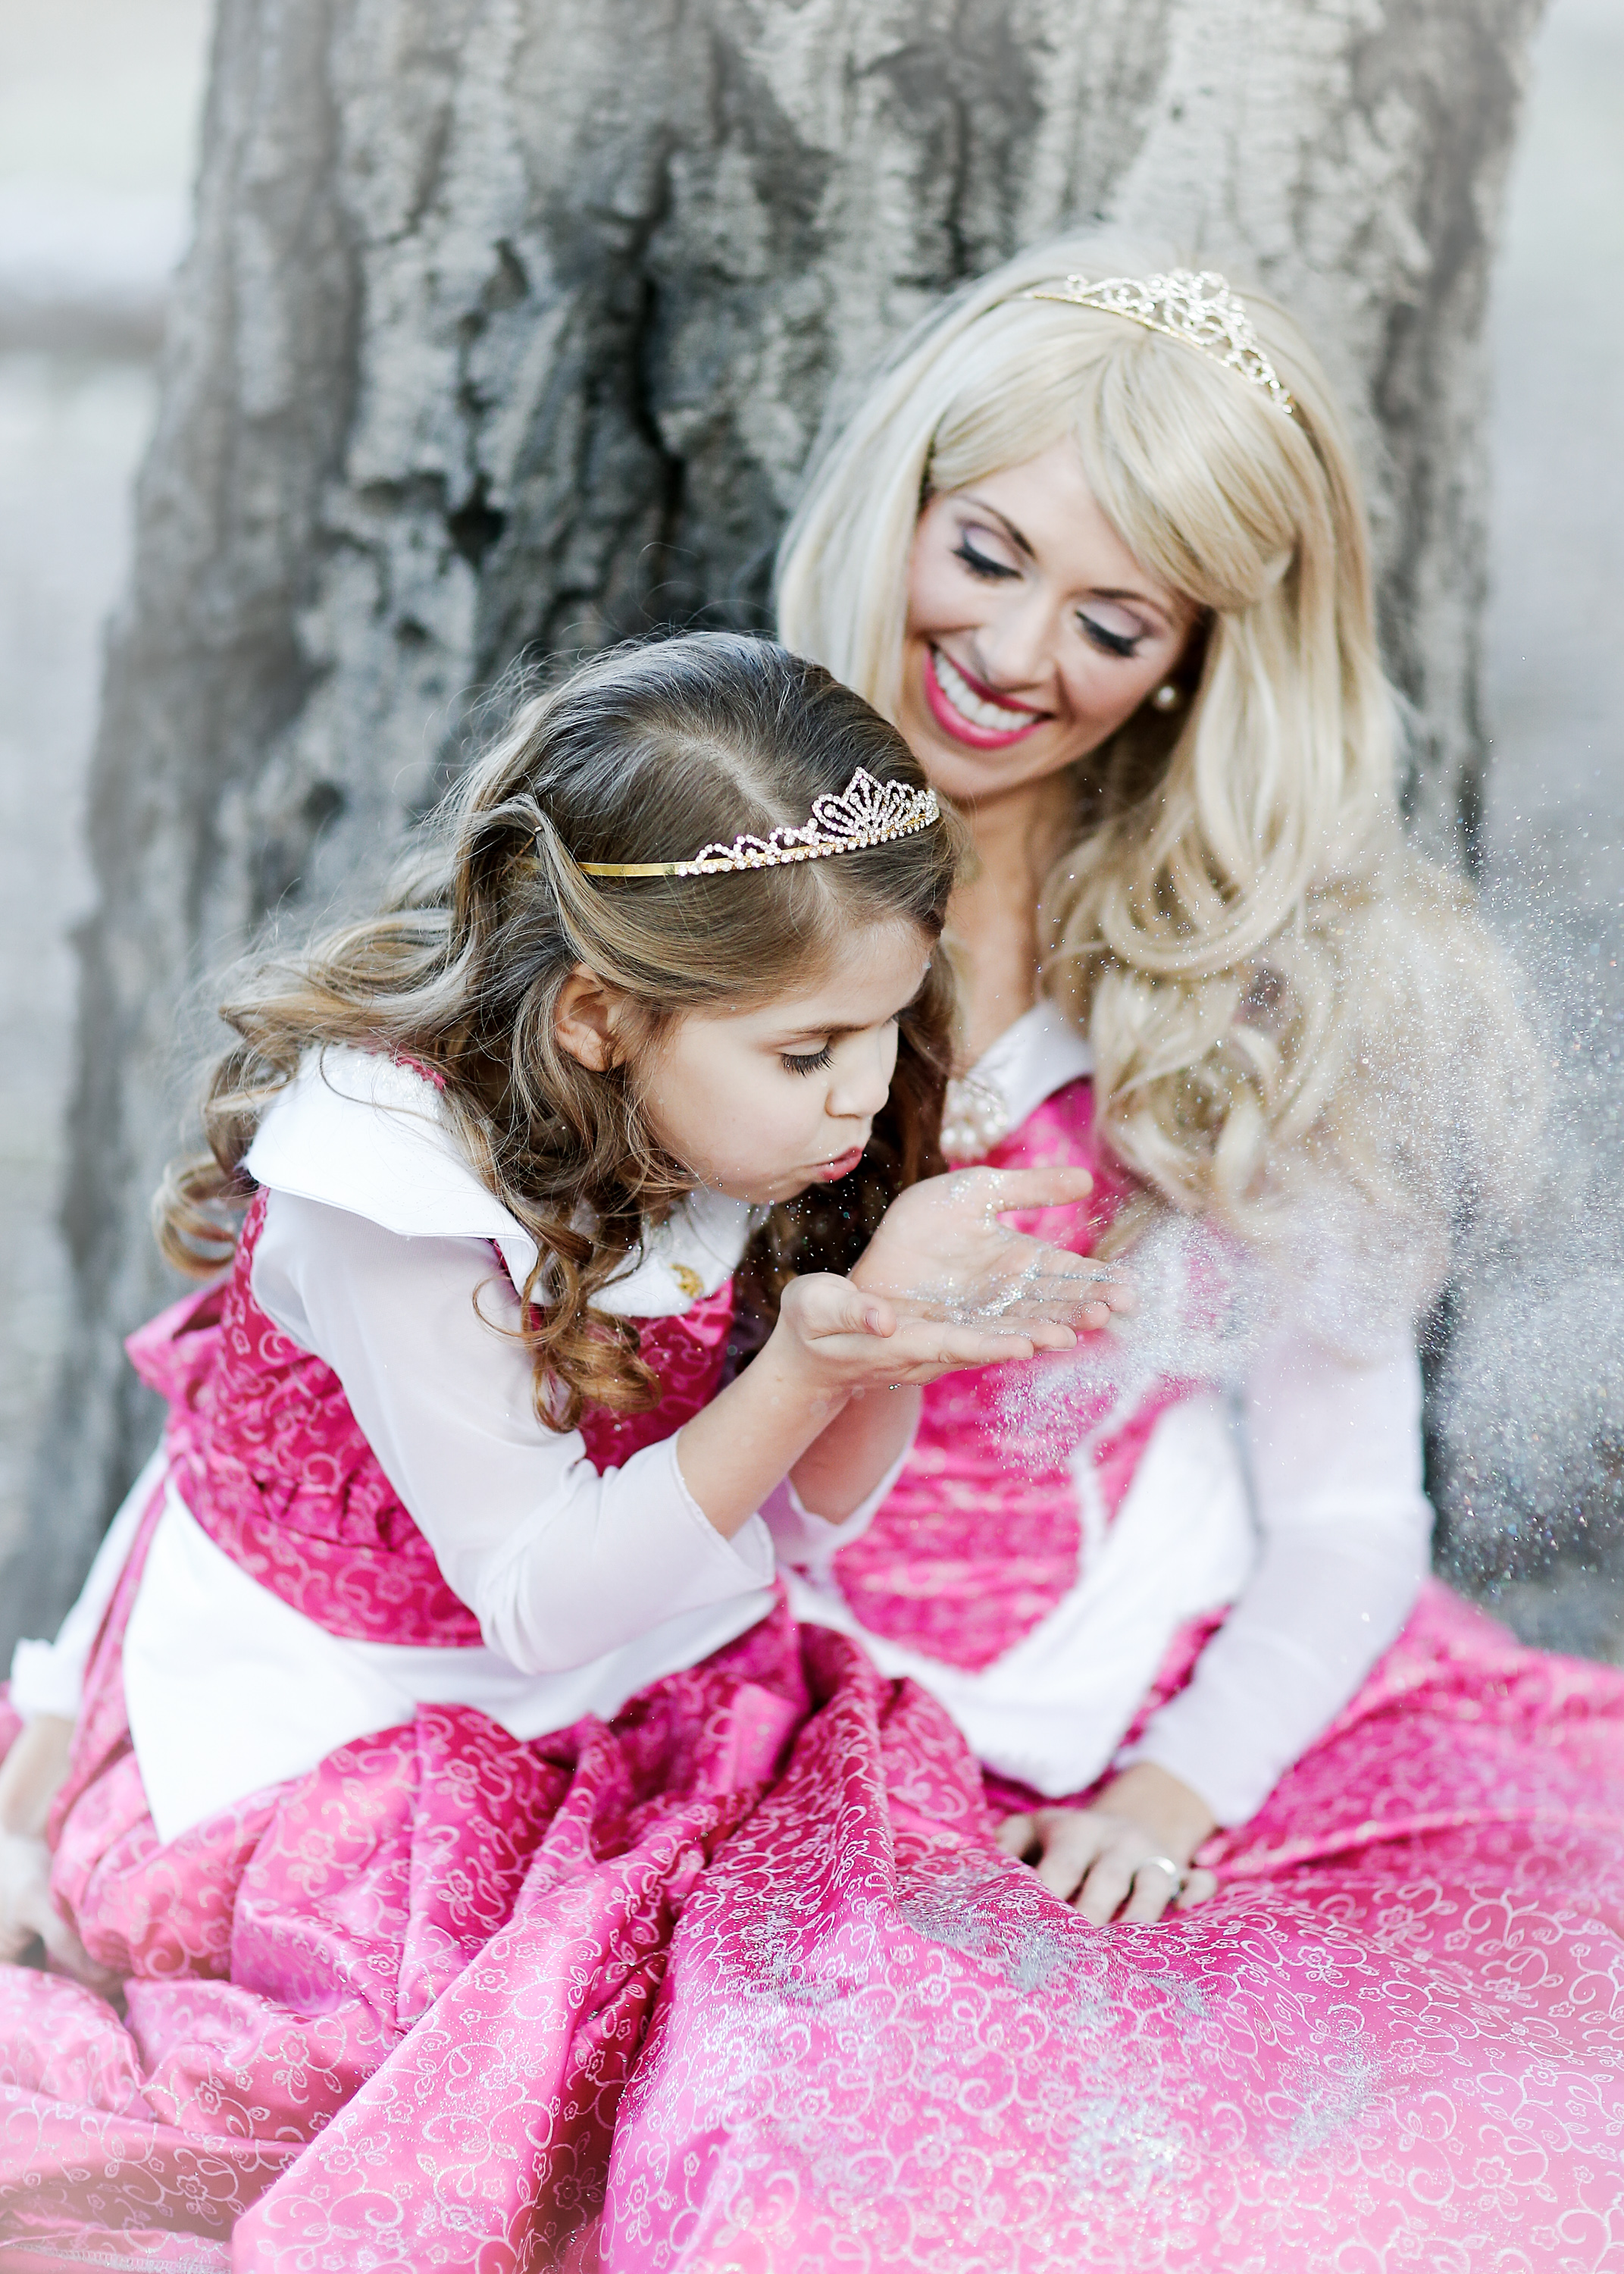 Mother-Daughter - Meagan is a beautiful soul and owner of an amazing company that gives her the opportunity to spread magic and love wherever she goes (in costume of course).She takes pictures with little ones celebrating birthdays all year long and she knew it was time to schedule a session with her own daughter. She wanted a special mother-daughter portrait series in matching princess dresses and we captured the magic of that moment in beautiful outdoor series.What is your vision? Let's make it happen!talent/costume @www.dreamcometrueentertainment.com